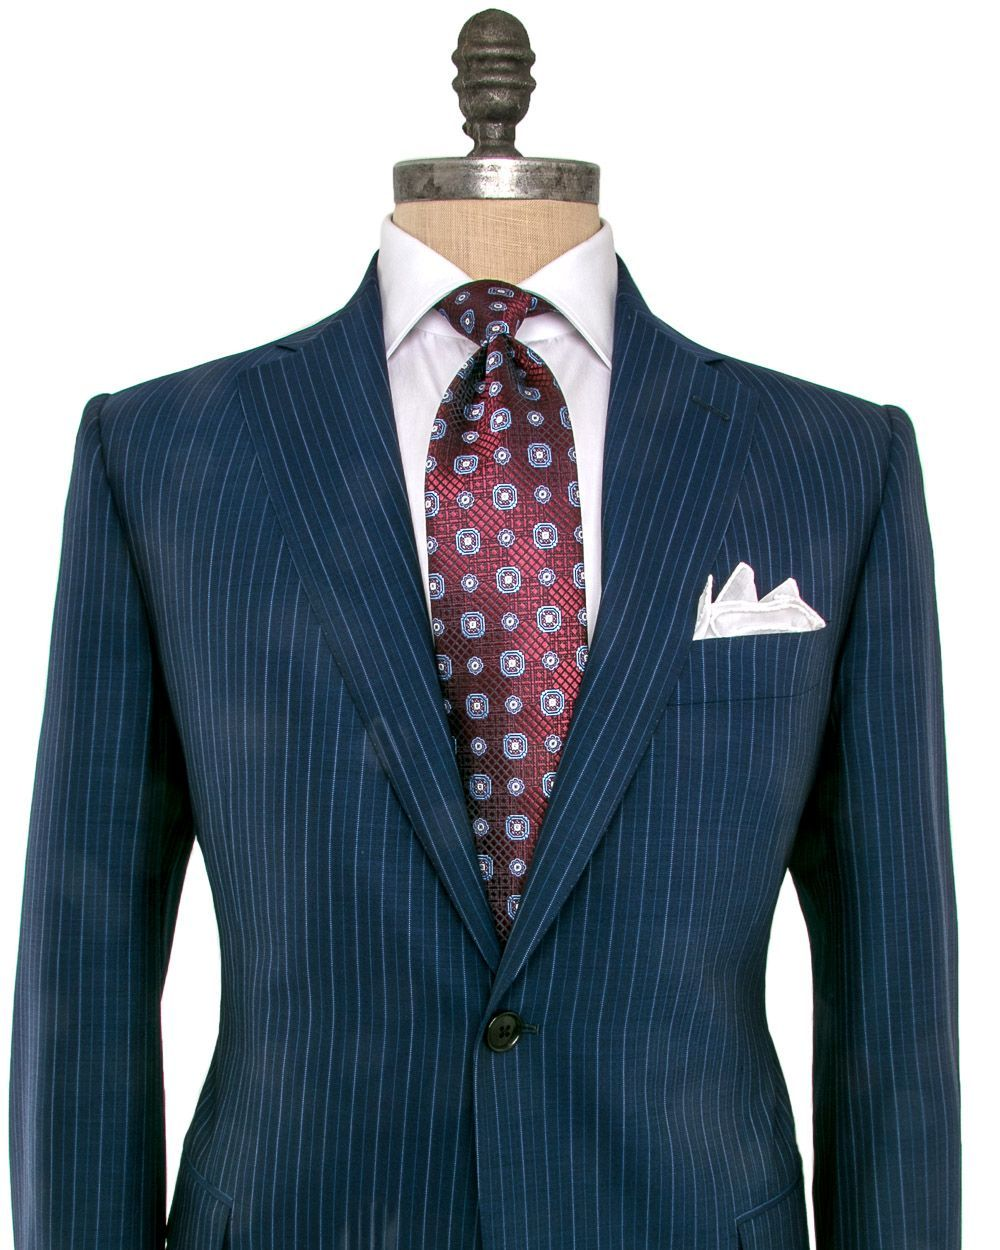 08e919a3e11bf3 Image of Belvest Navy Pinstripe Suit #Menssuits | Clothings | Navy ...